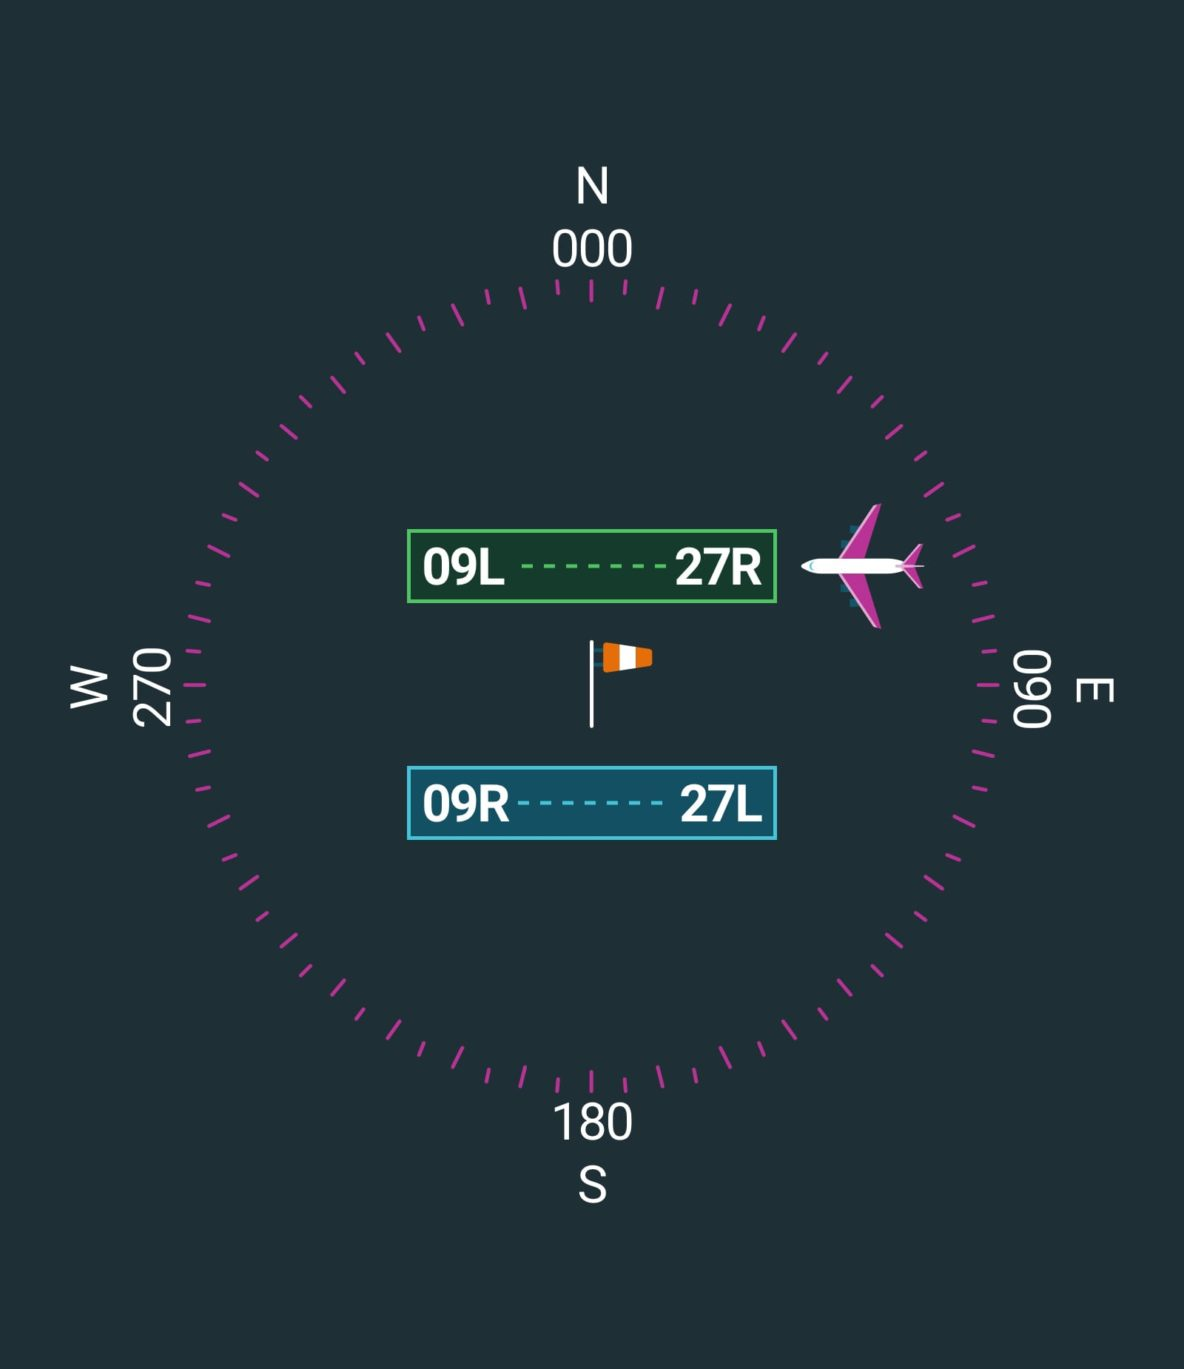 Data visualization about airport runways